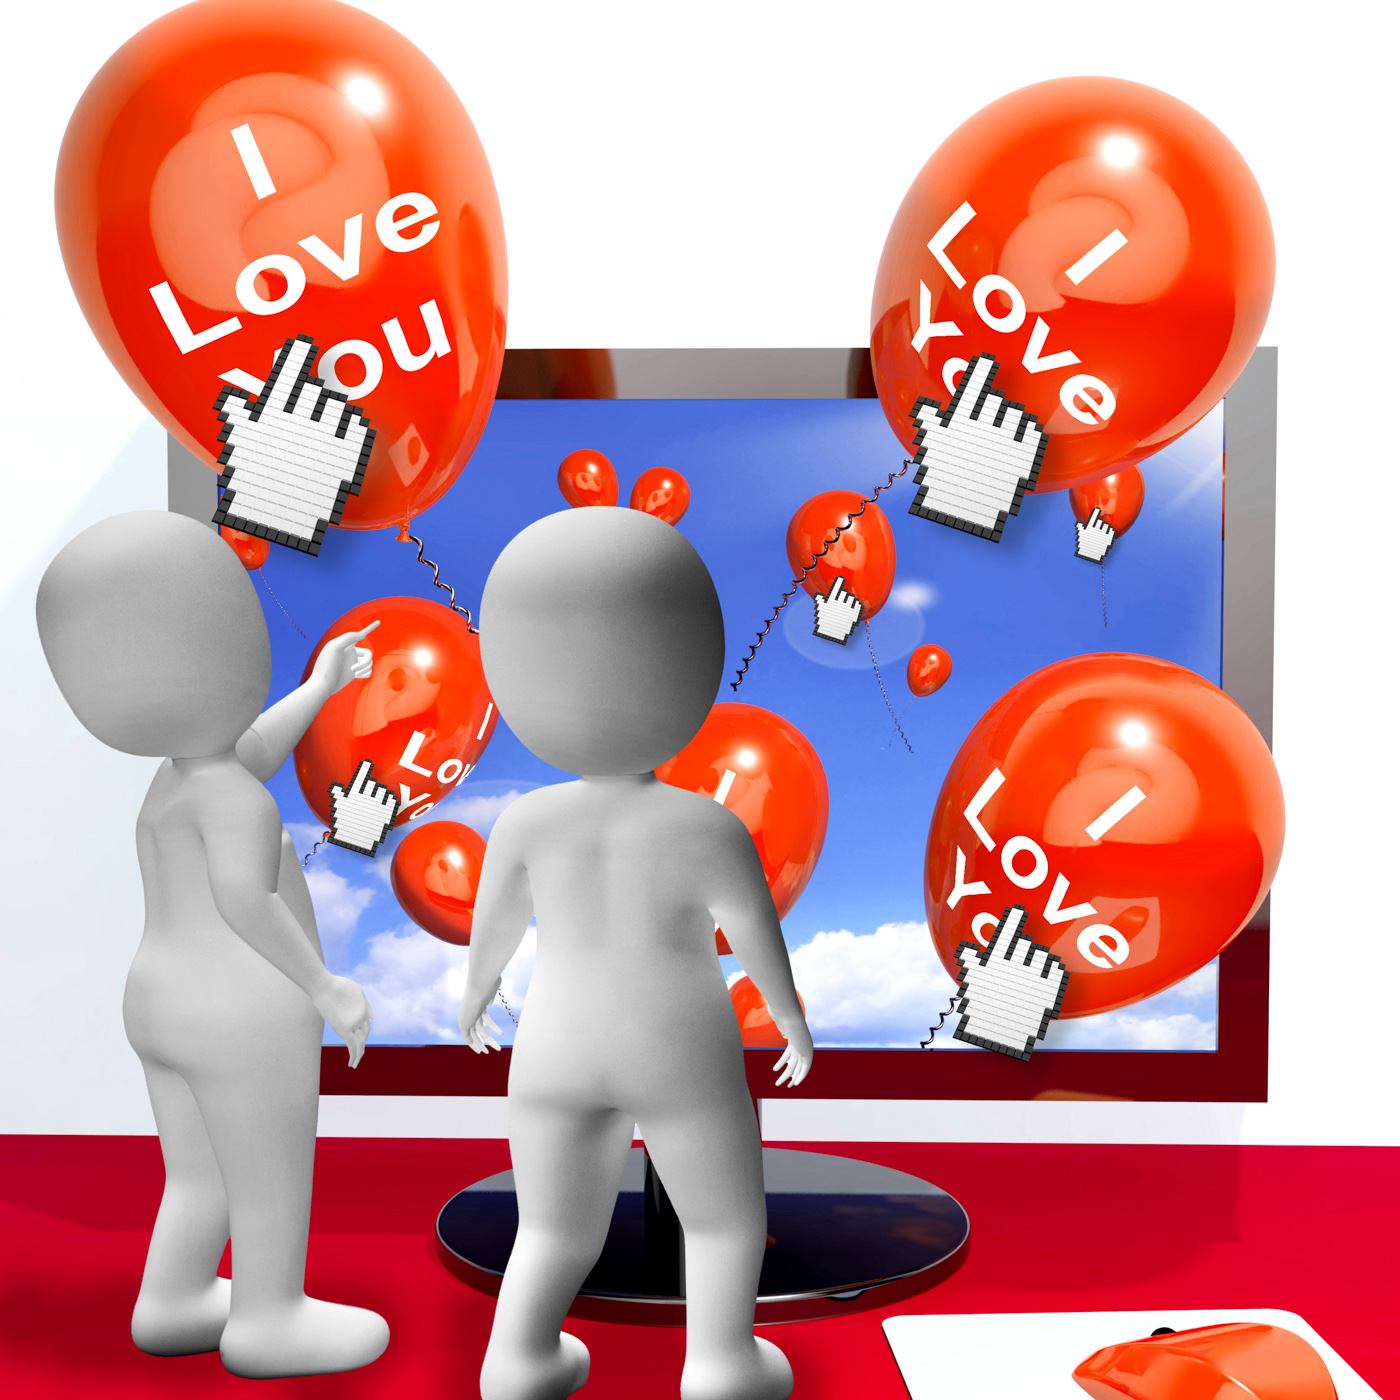 I love you balloons represent internet greetings for lovers photo